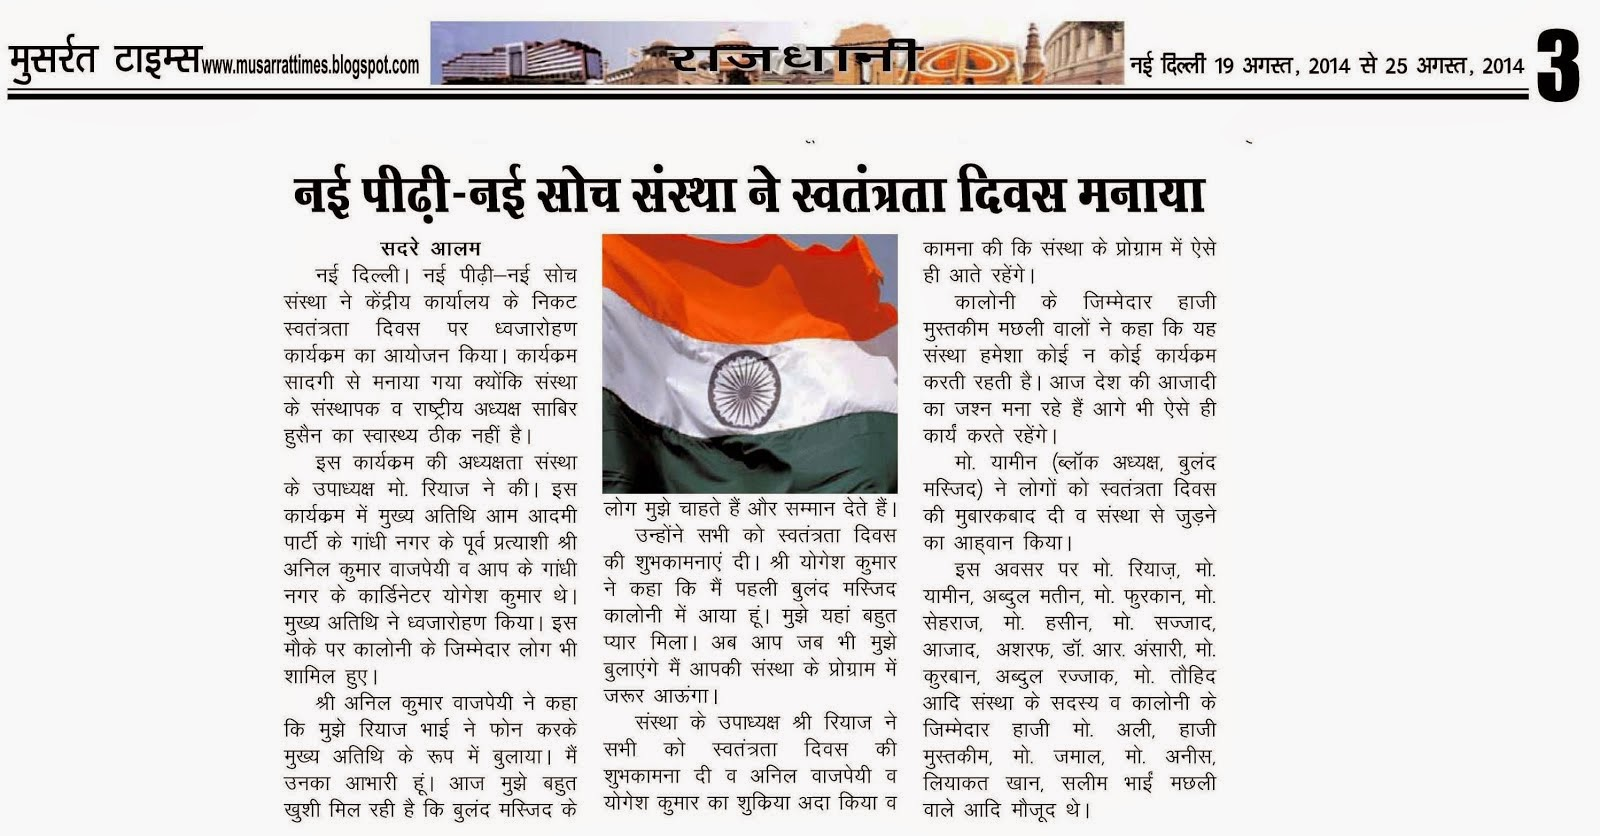 MUSARRAT TIMES 19-8-2014 TO 25-8-2014 PAGE-3